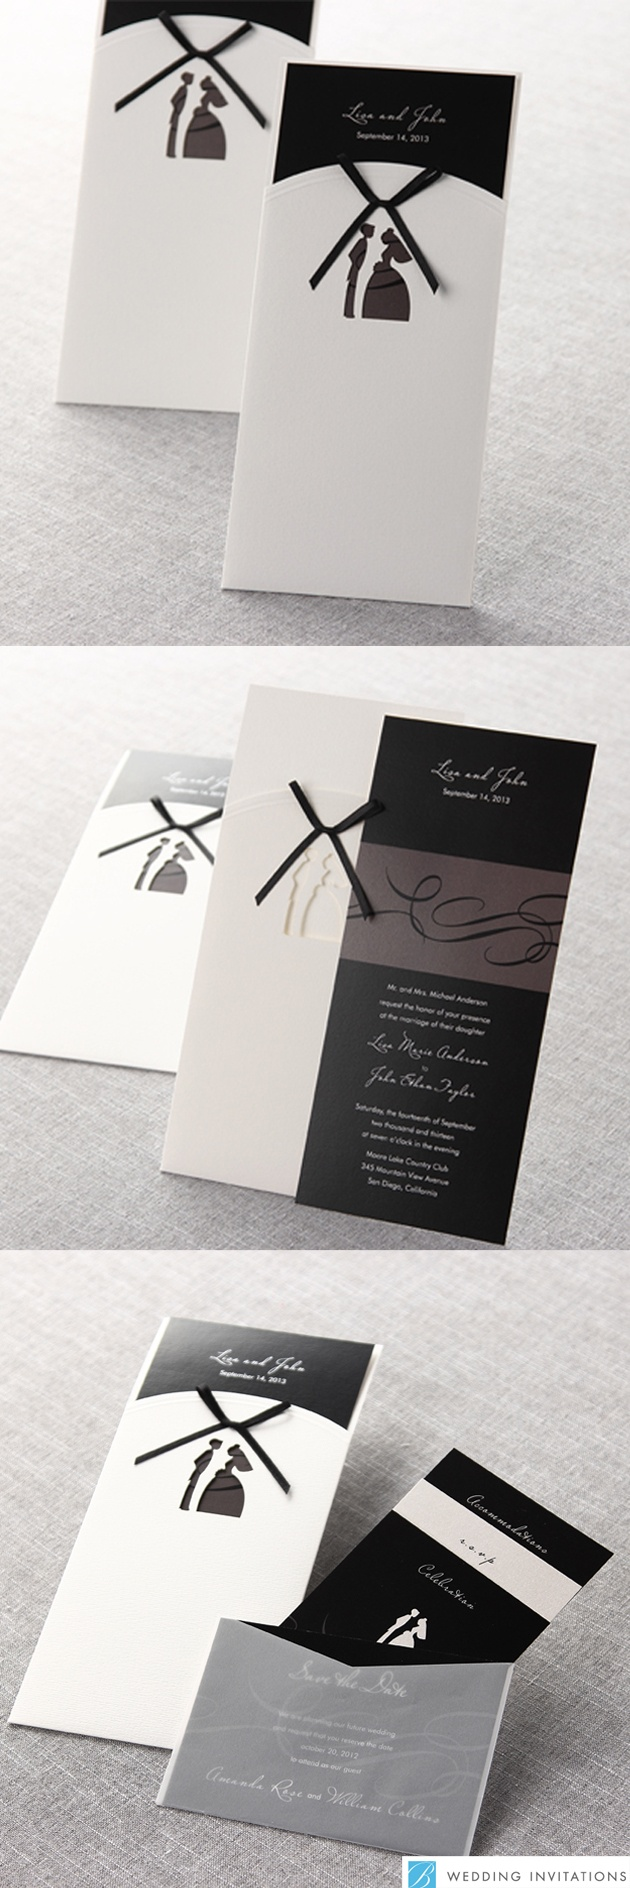 Traditional Bride and Groom by B Wedding Invitations    #weddinginvitations  #bweddinginvitations